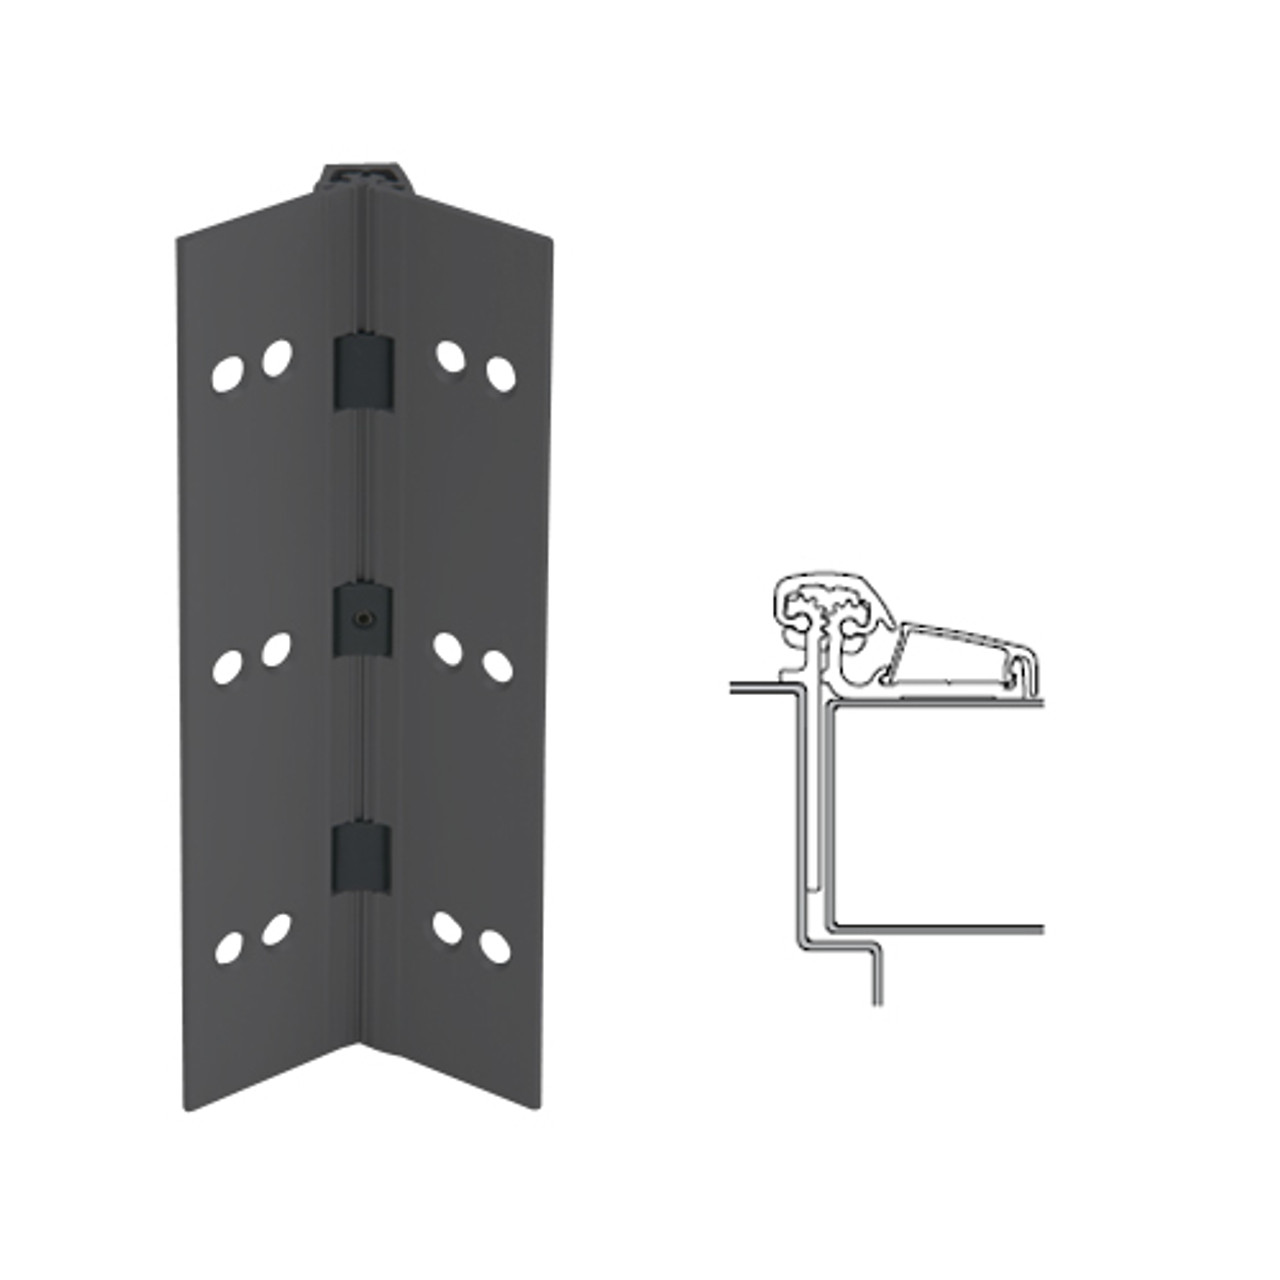 053XY-315AN-83 IVES Adjustable Half Surface Continuous Geared Hinges in Anodized Black